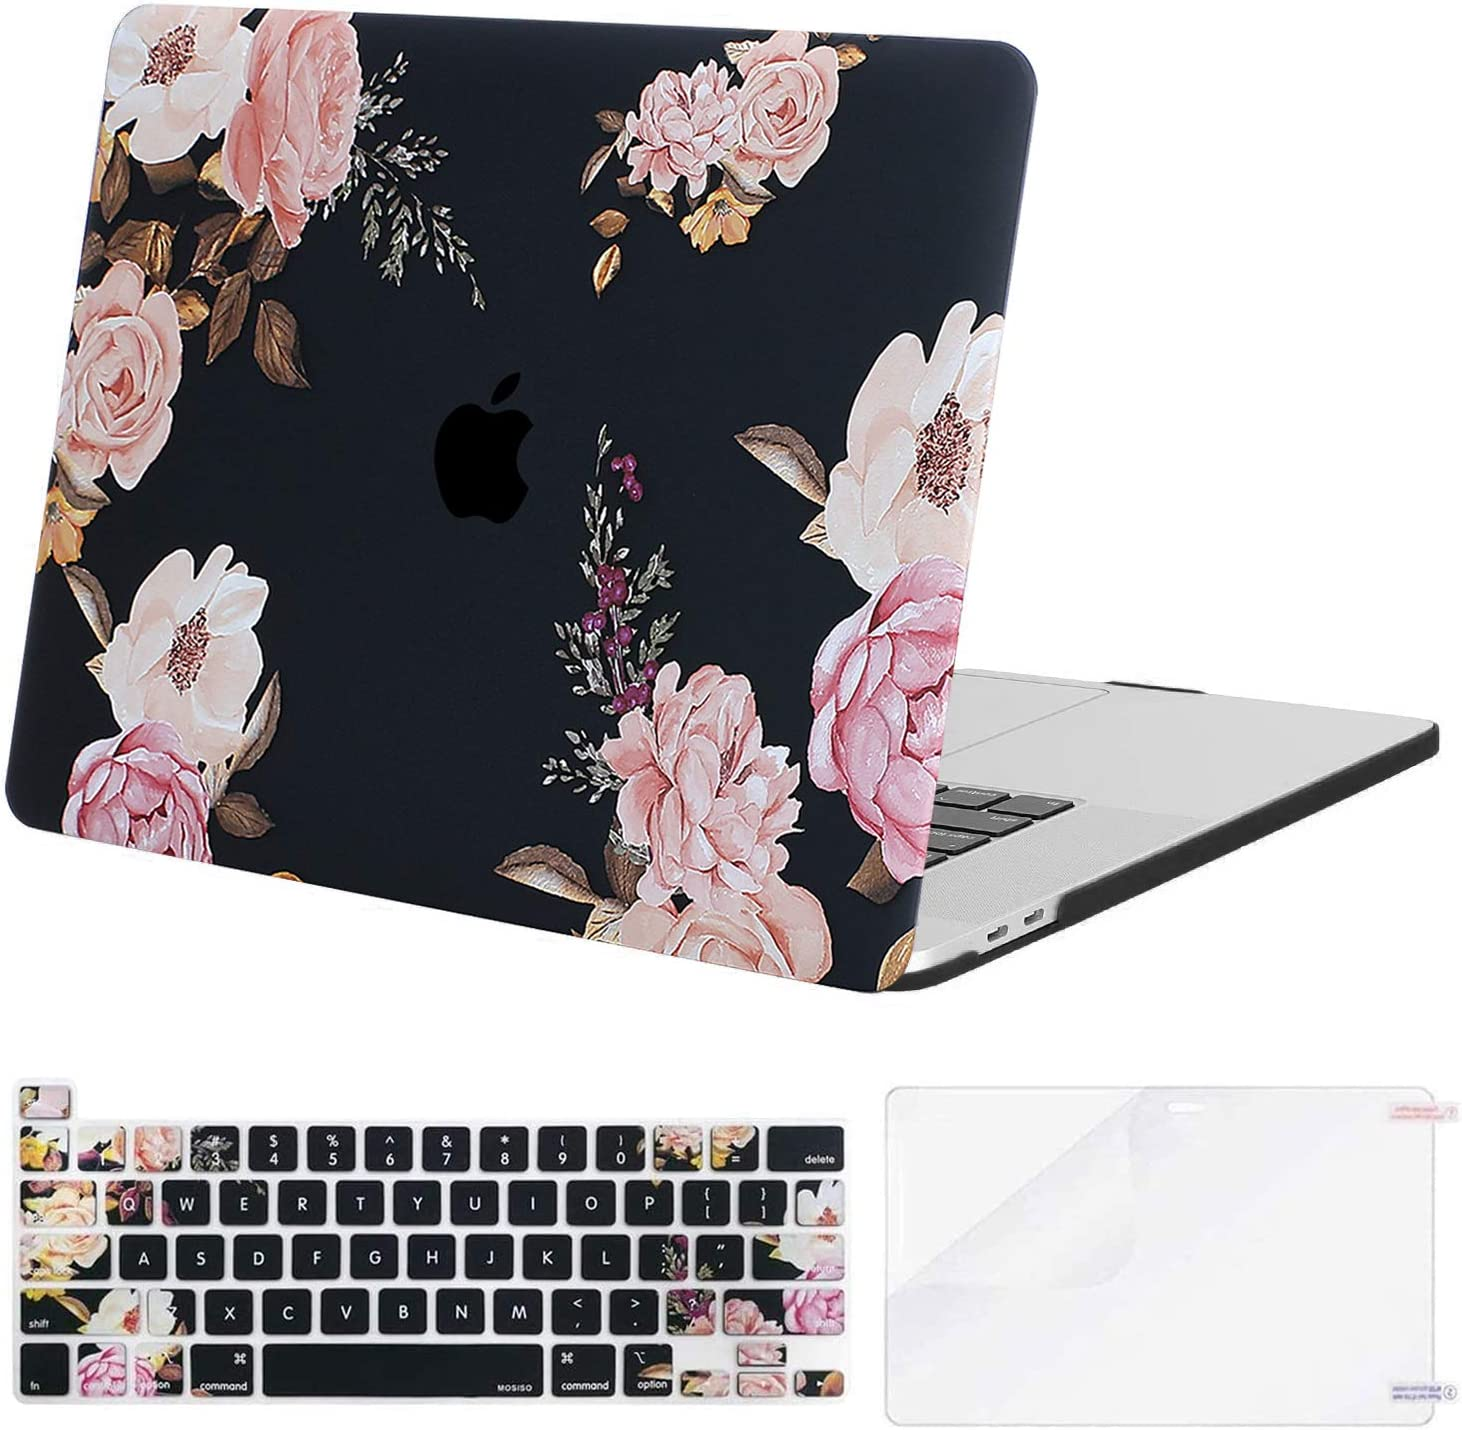 MOSISO MacBook Pro 16 inch Case 2020 2019 Release A2141, Plastic Peony Hard Shell Case & Keyboard Cover Skin & Screen Protector Compatible with MacBook Pro 16 inch with Touch Bar, Black